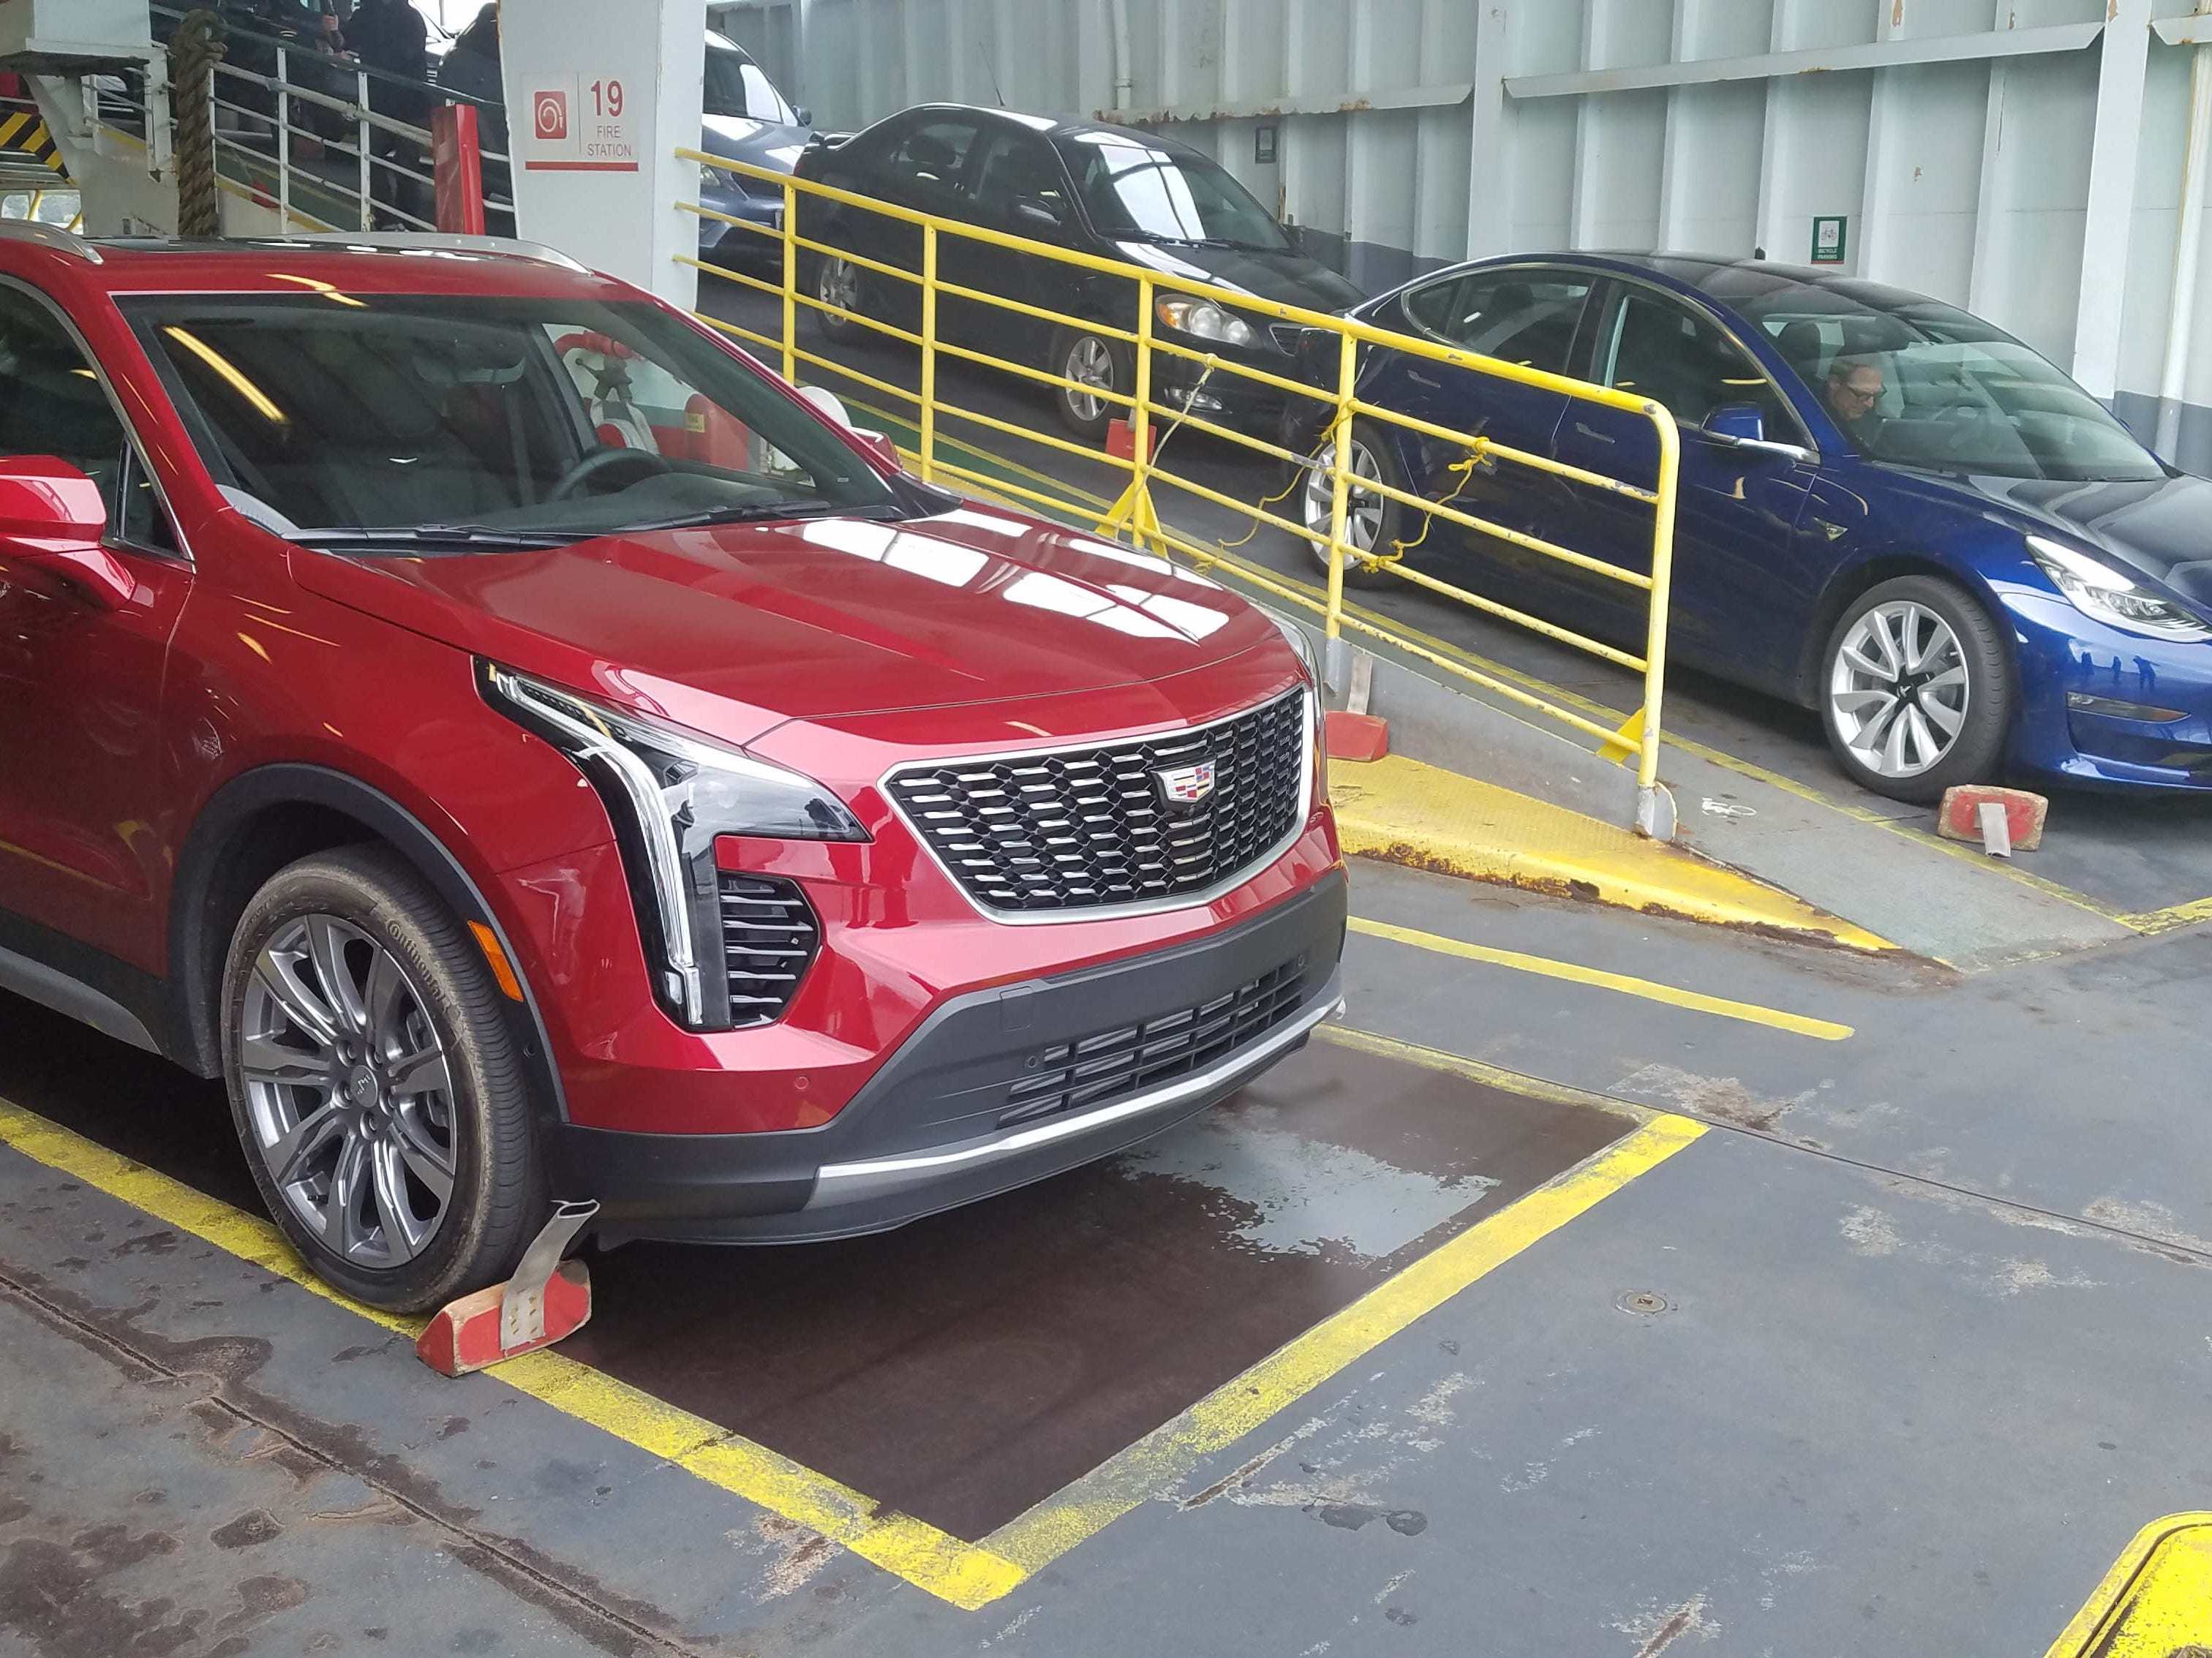 New for 2018. The 2019 Cadillac XT4, left, and Tesla Model 3 are two of the year's most anticipated models.